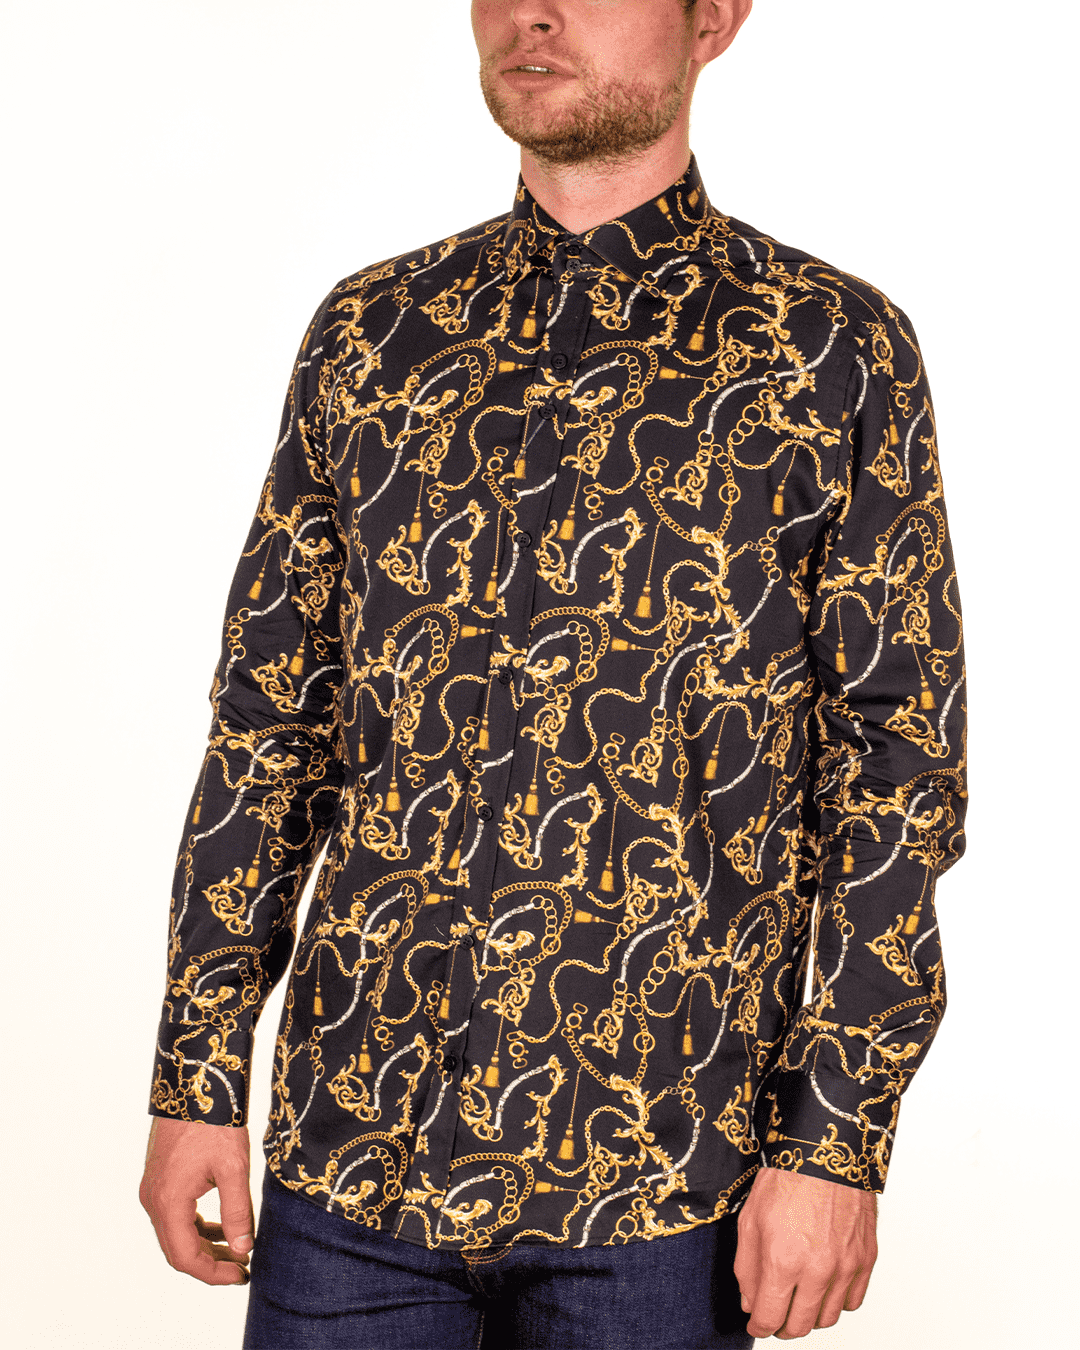 GUIDE LONDON Patterned Black LS Shirt - Revolver Menswear Bawtry